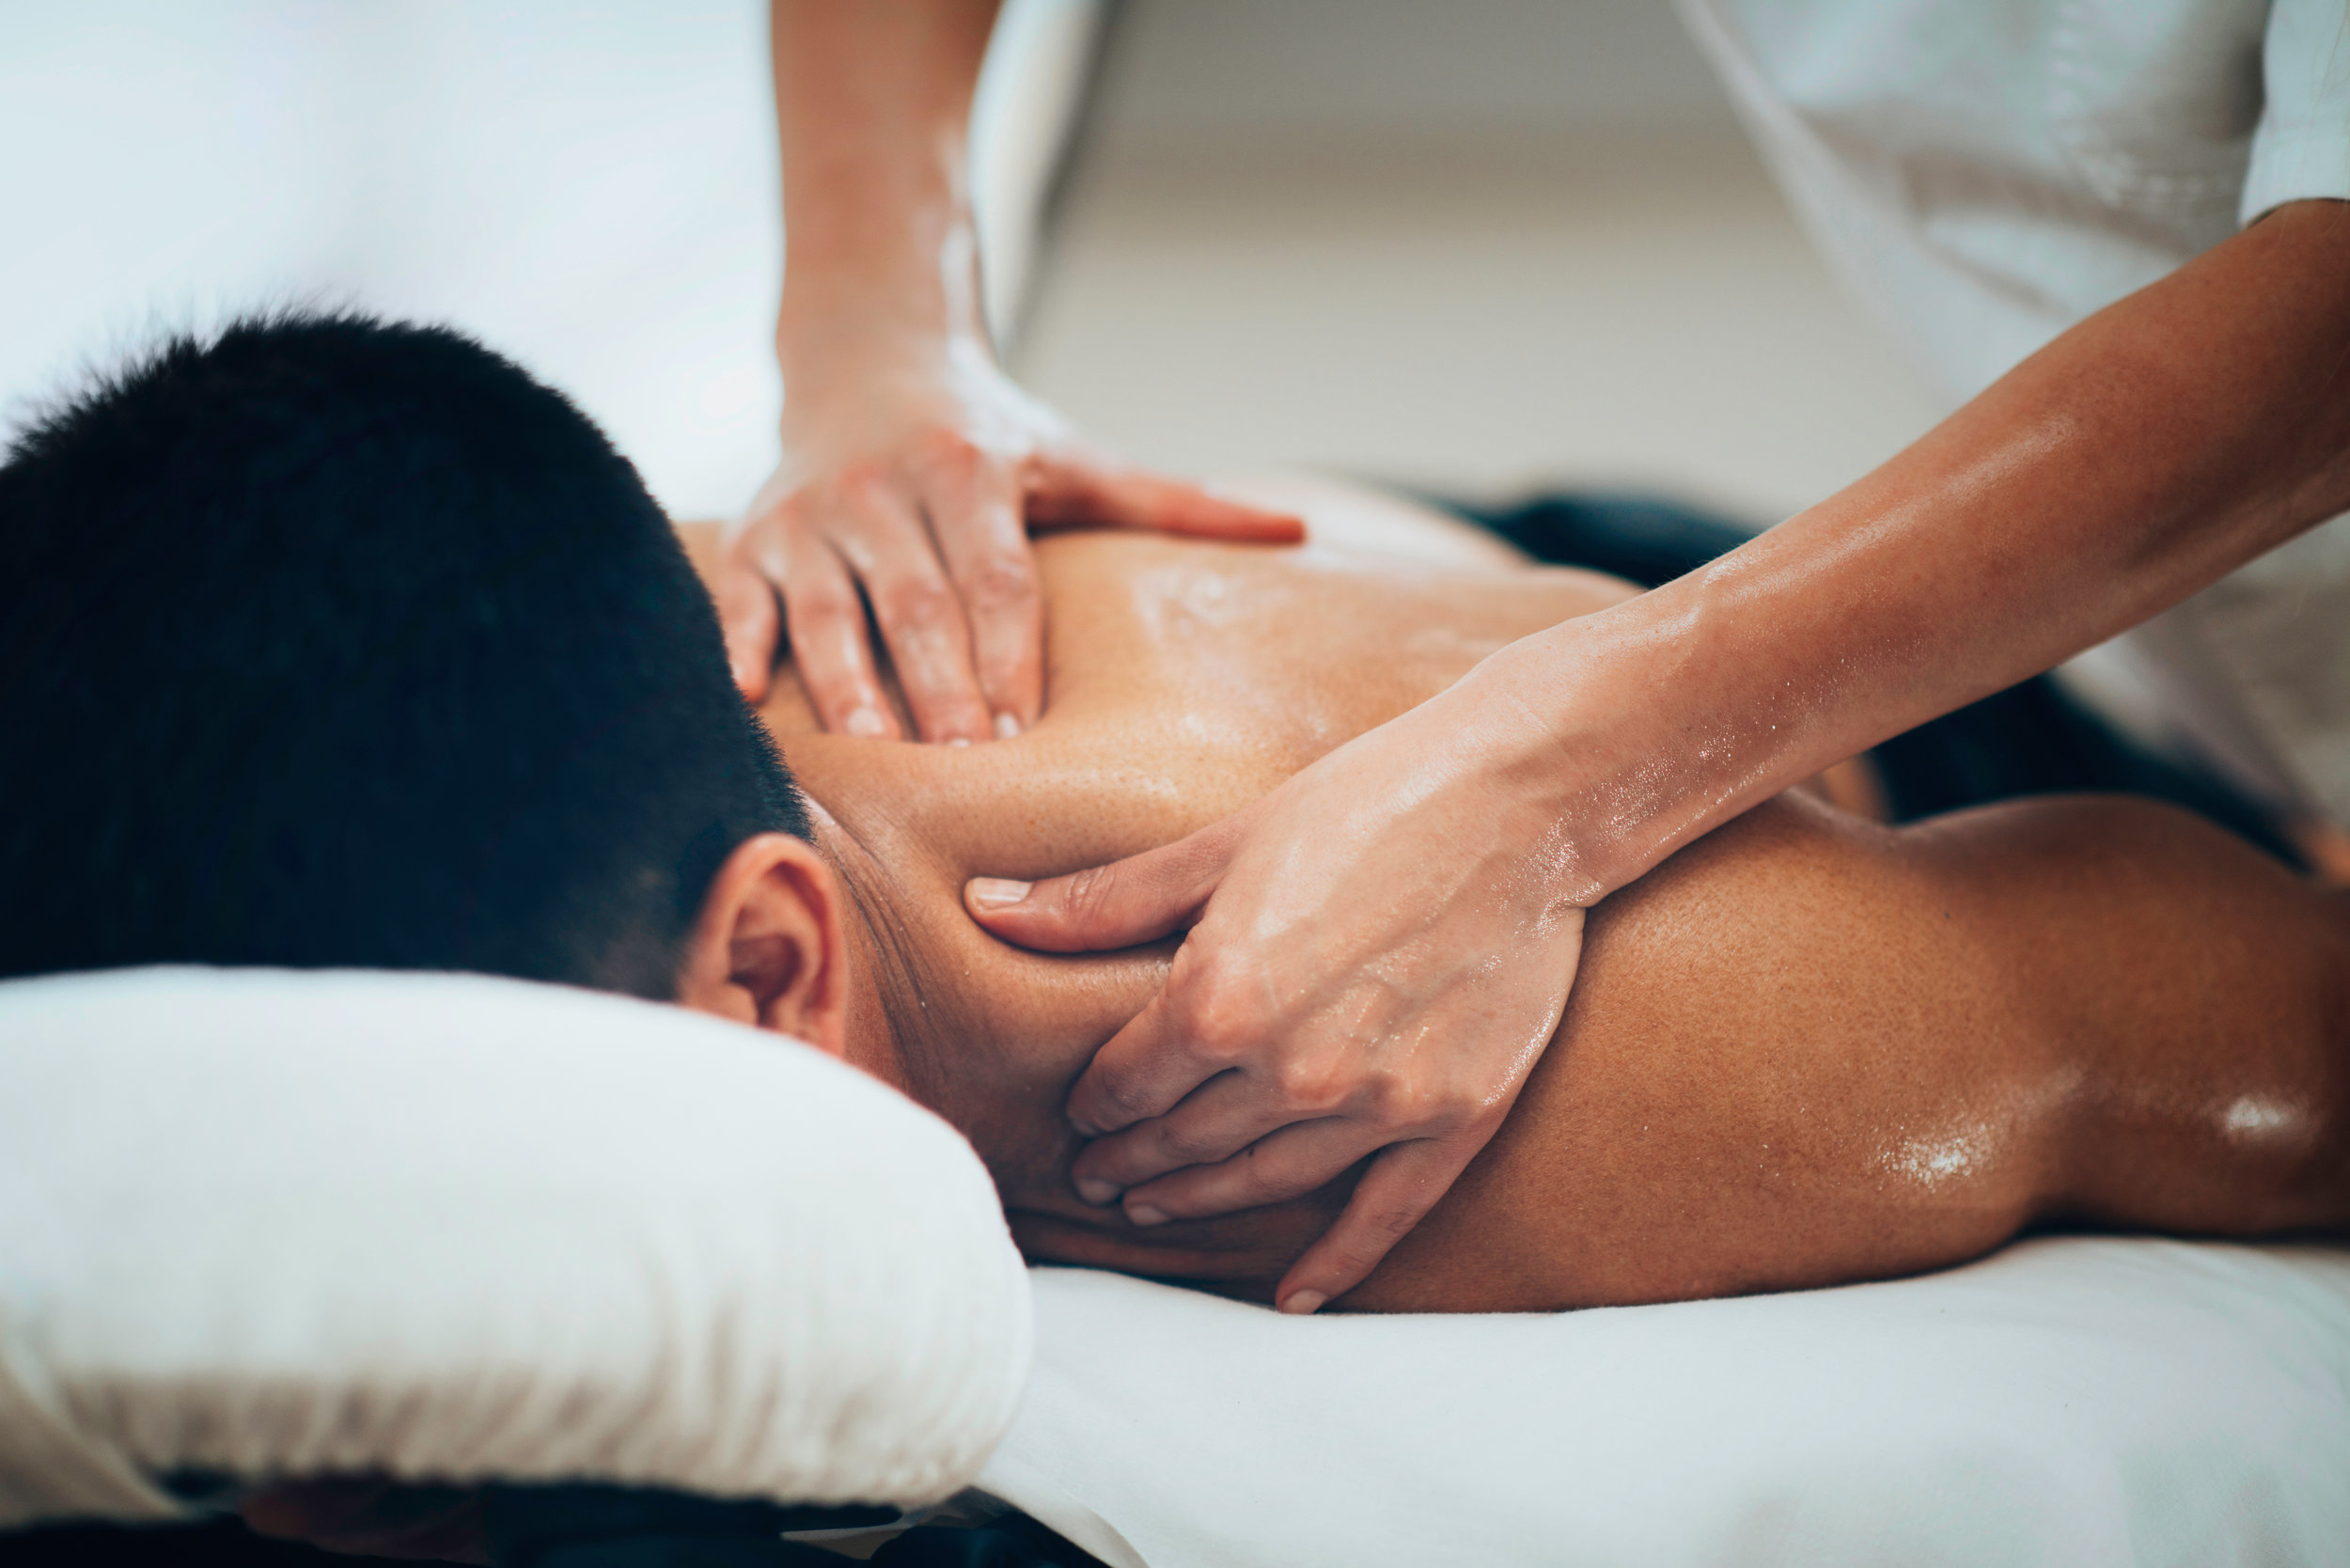 deep tissue massage   involves applying firm pressure and slow strokes to reach   deeper   layers of   muscle   and fascia (the connective   tissue   surrounding muscles).It's used for chronic aches and pain and contracted areas such as a stiff neck and upper back